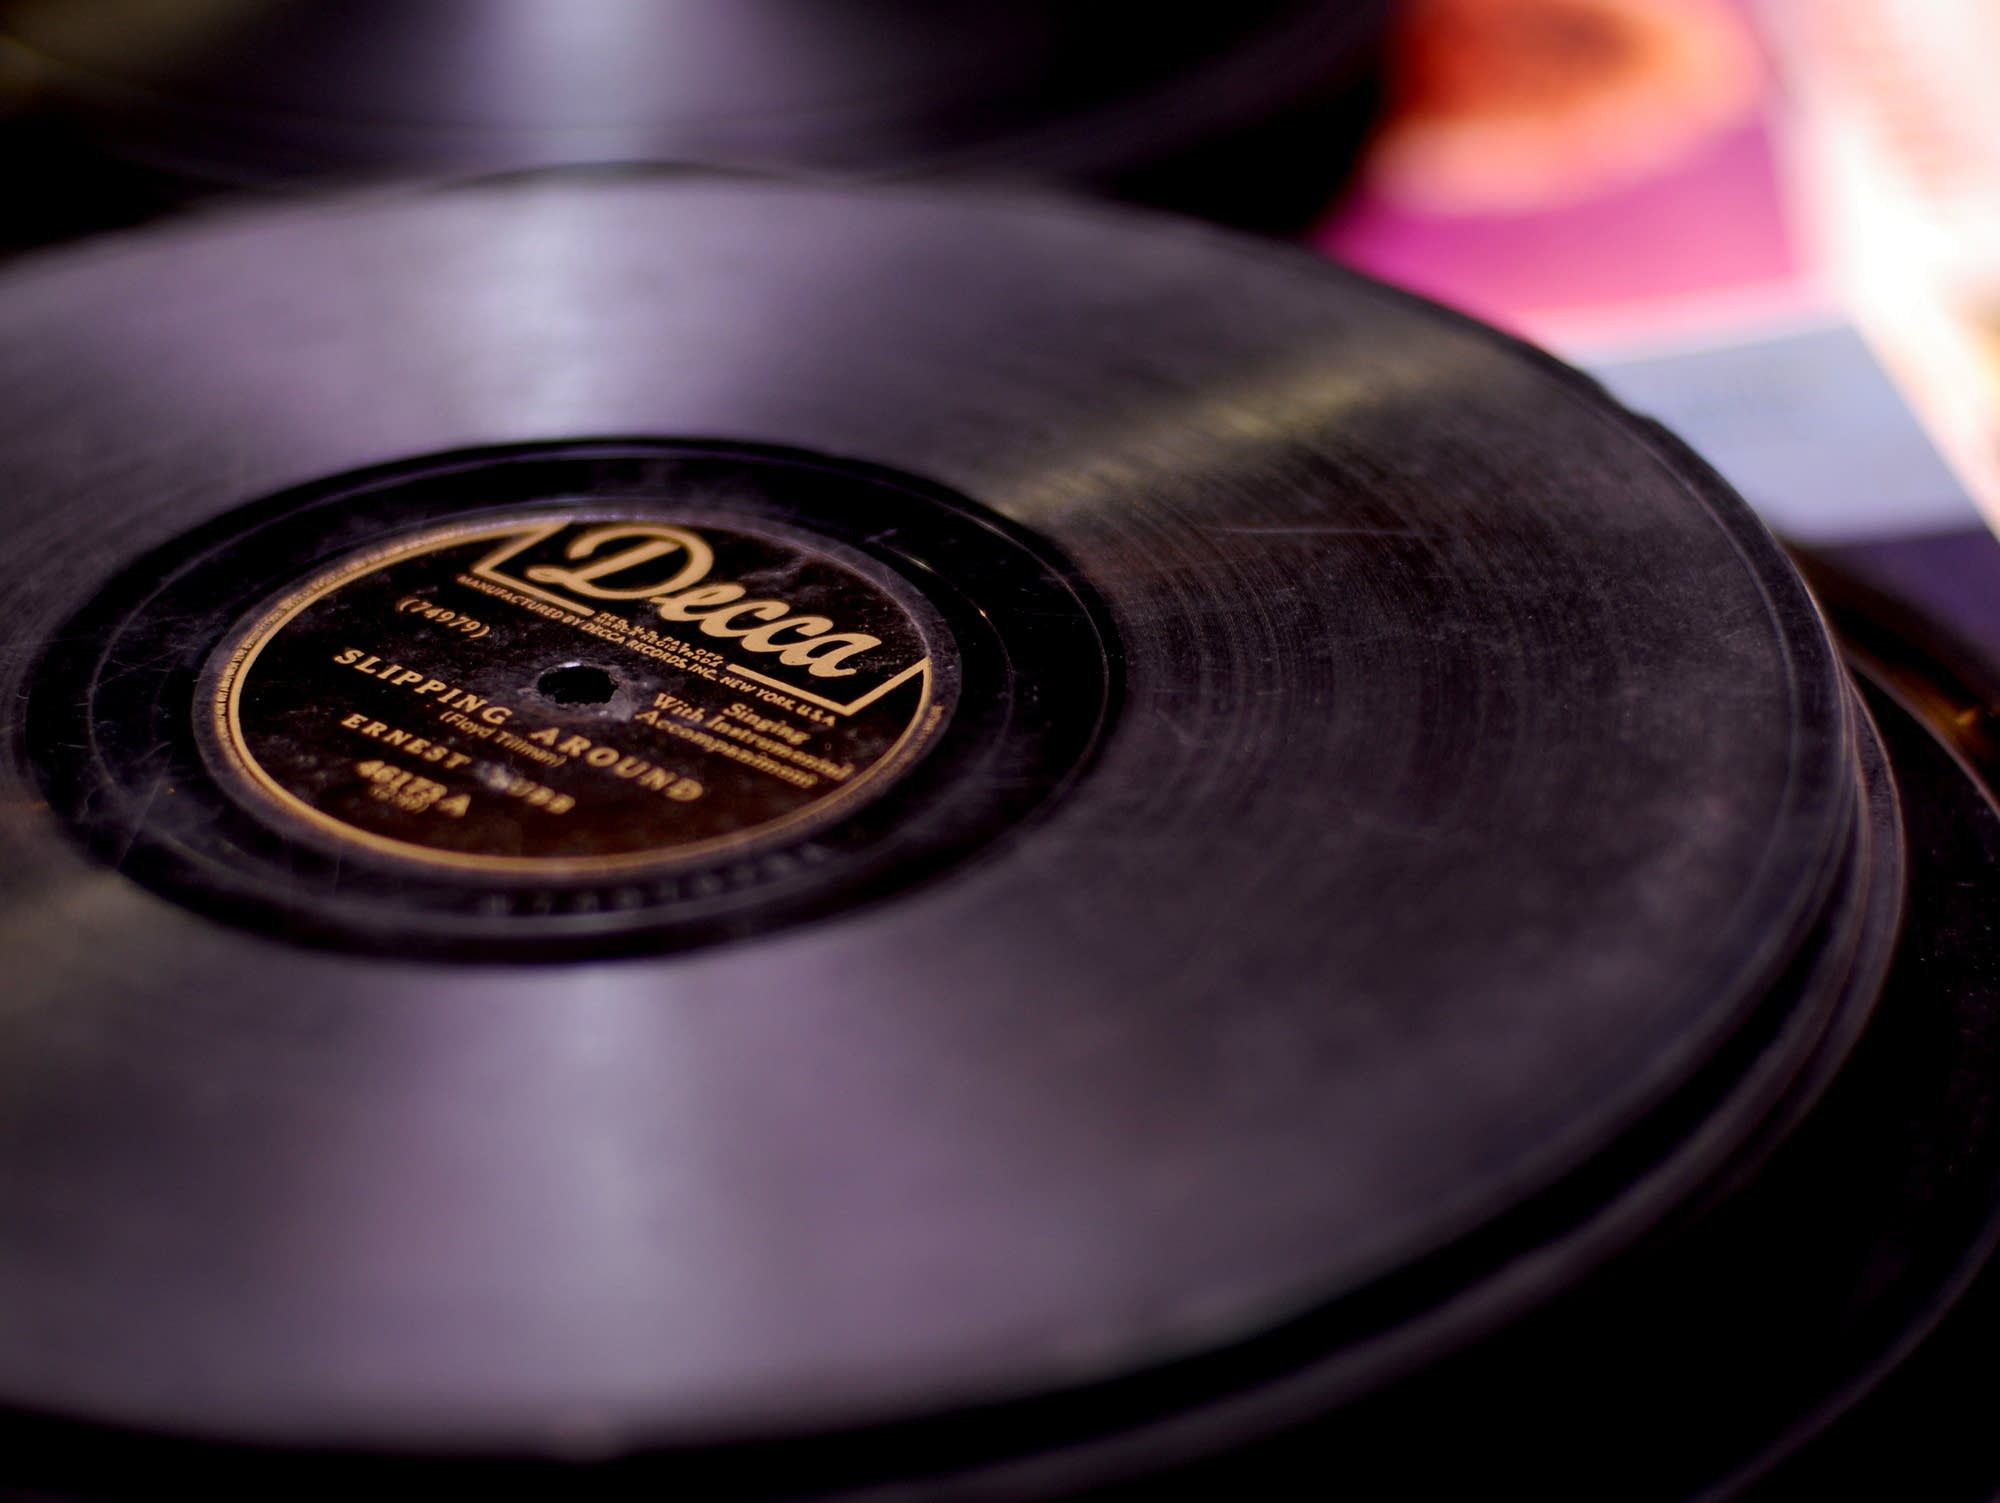 A 78 RPM record of Ernest Tubb's 'Slipping Around'